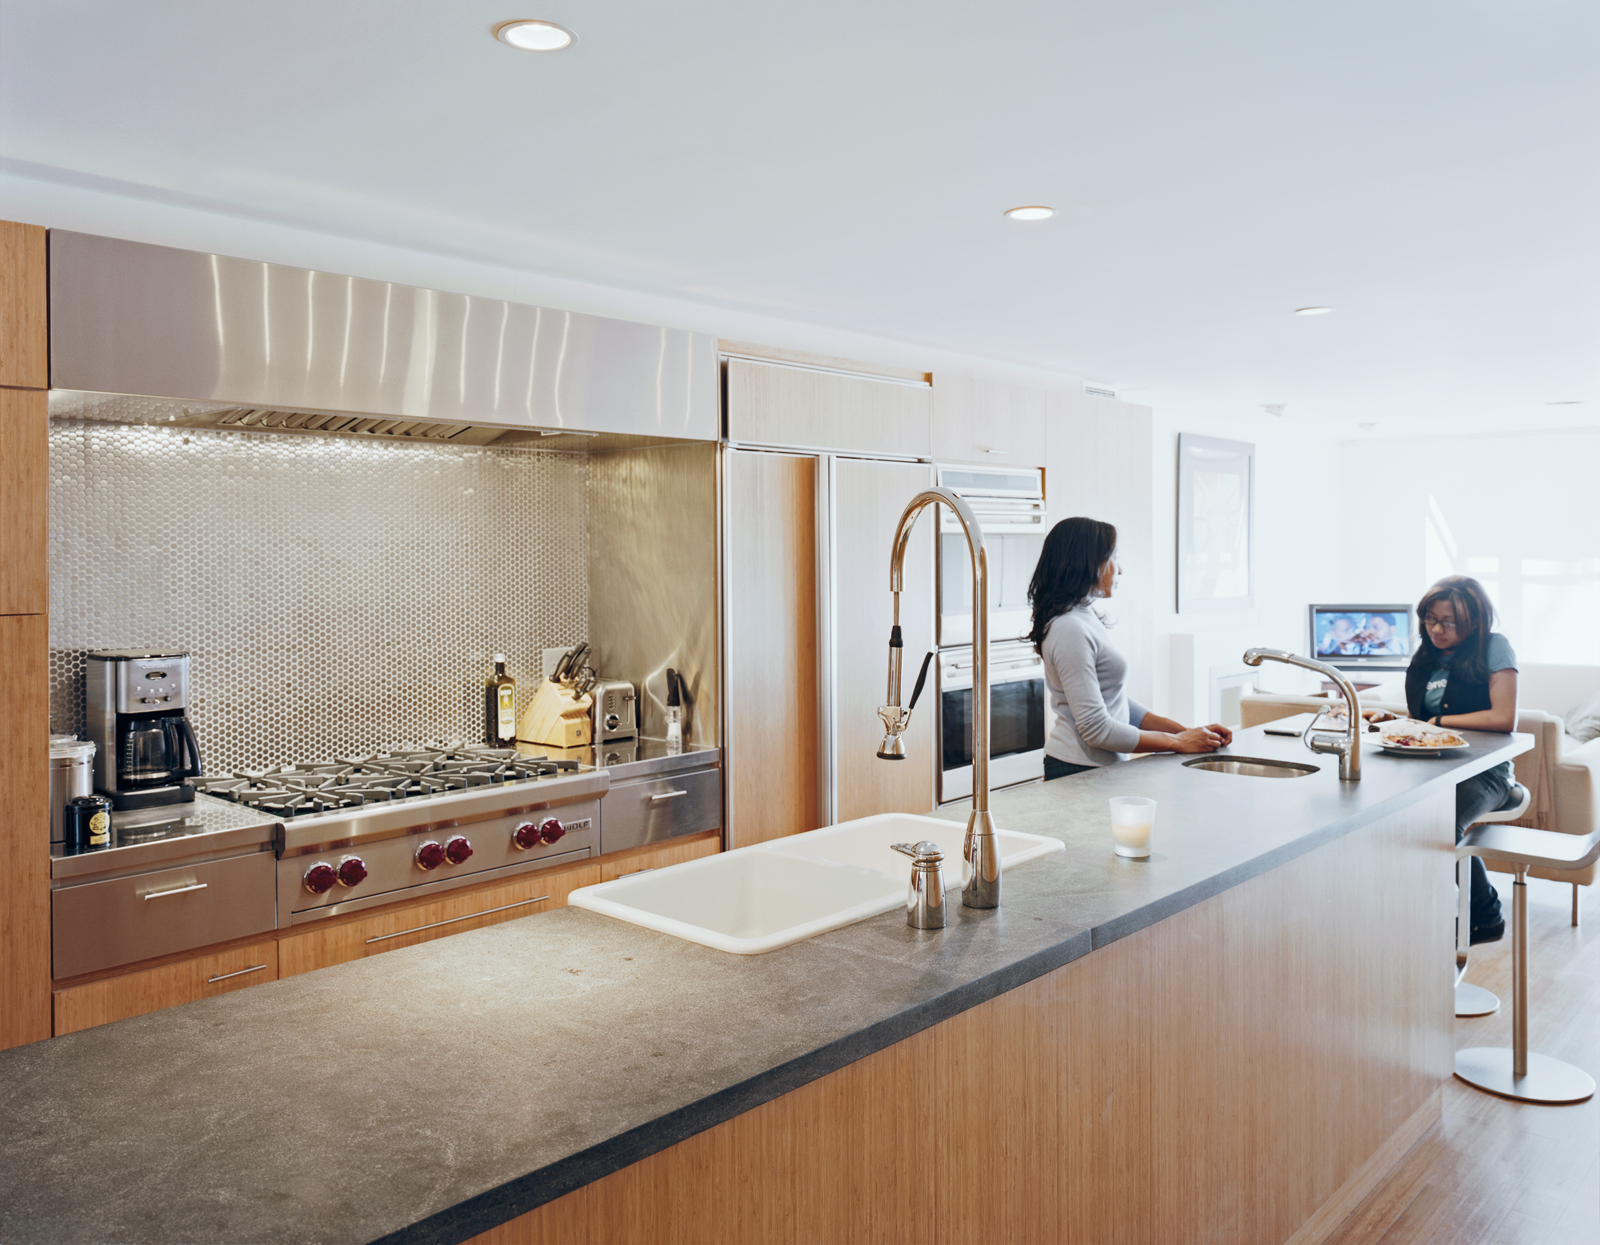 The kitchen has ample cooking space and room for a crowd. The Ann Sacks tile backsplash softens the line of the stainless steel, while the black absolute granite countertop adds a muted counterpoint. Kohler and Grohe fixtures ensure that dishes can be tac